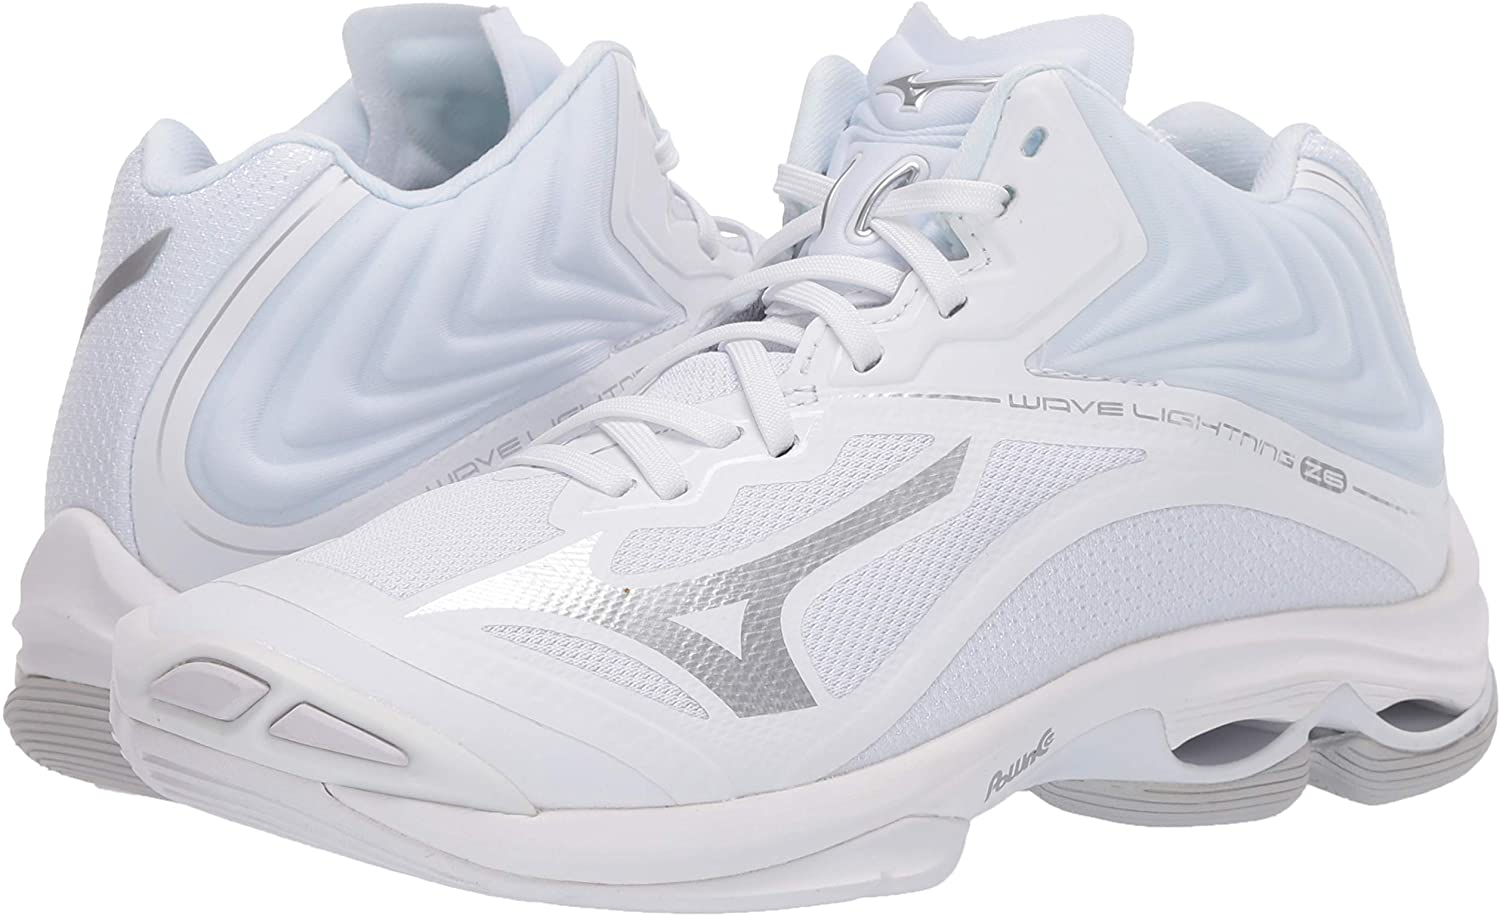 Mizuno Womens Wave Lightning Z6 Mid Volleyball Shoe